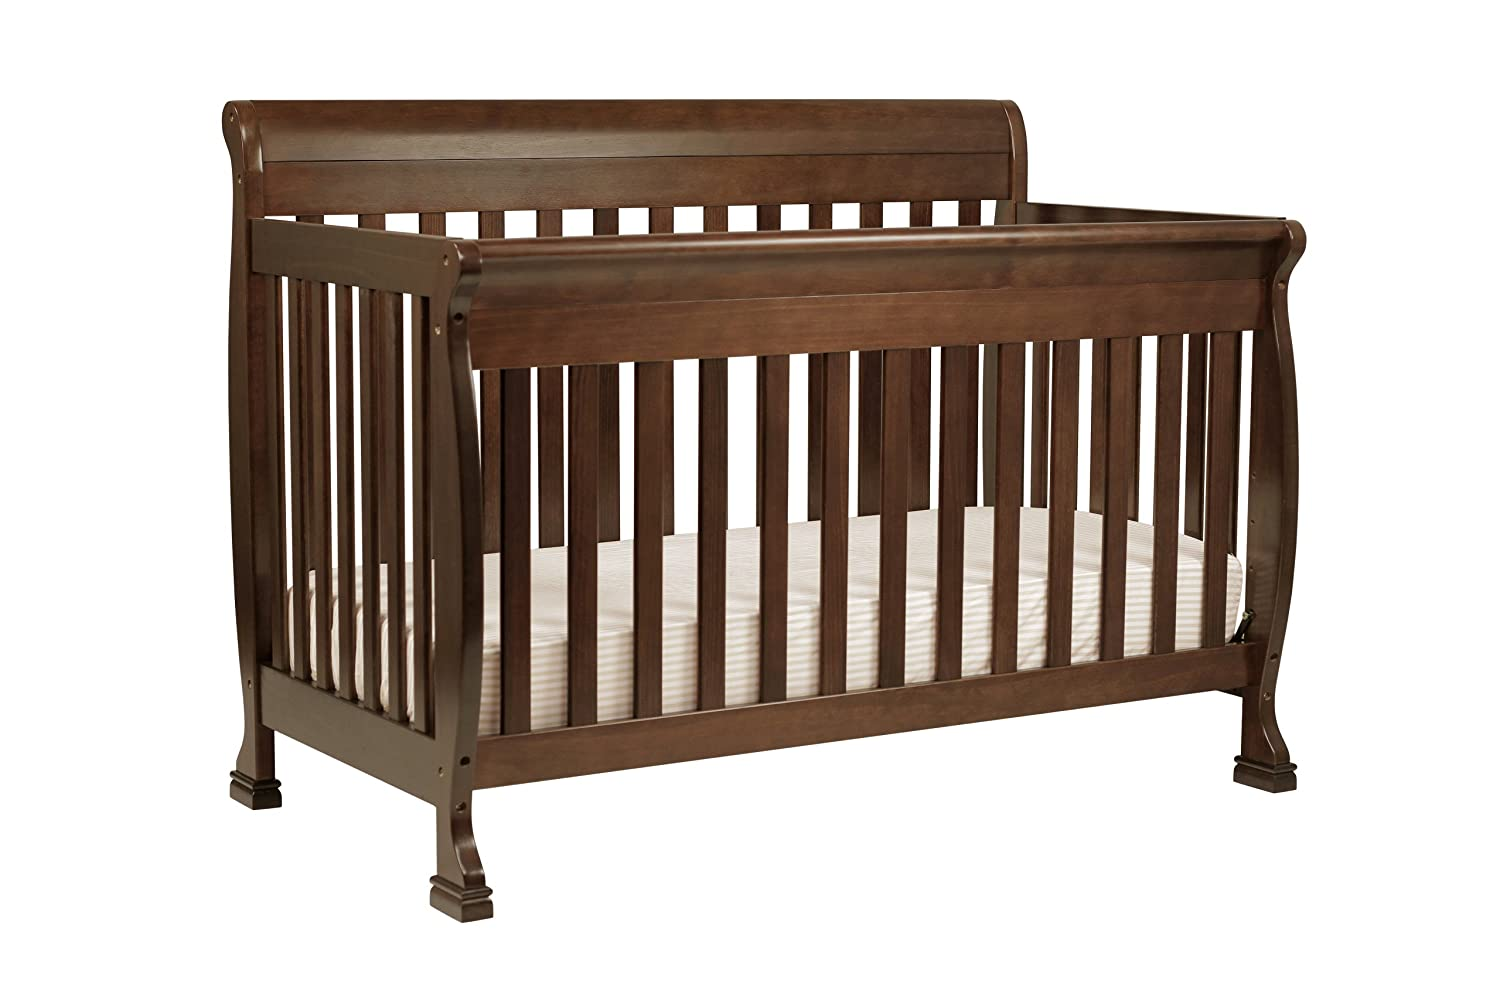 Baby crib youth bed - Amazon Com Davinci Kalani 4 In 1 Convertible Crib With Toddler Rail Espresso Toddler Beds Baby